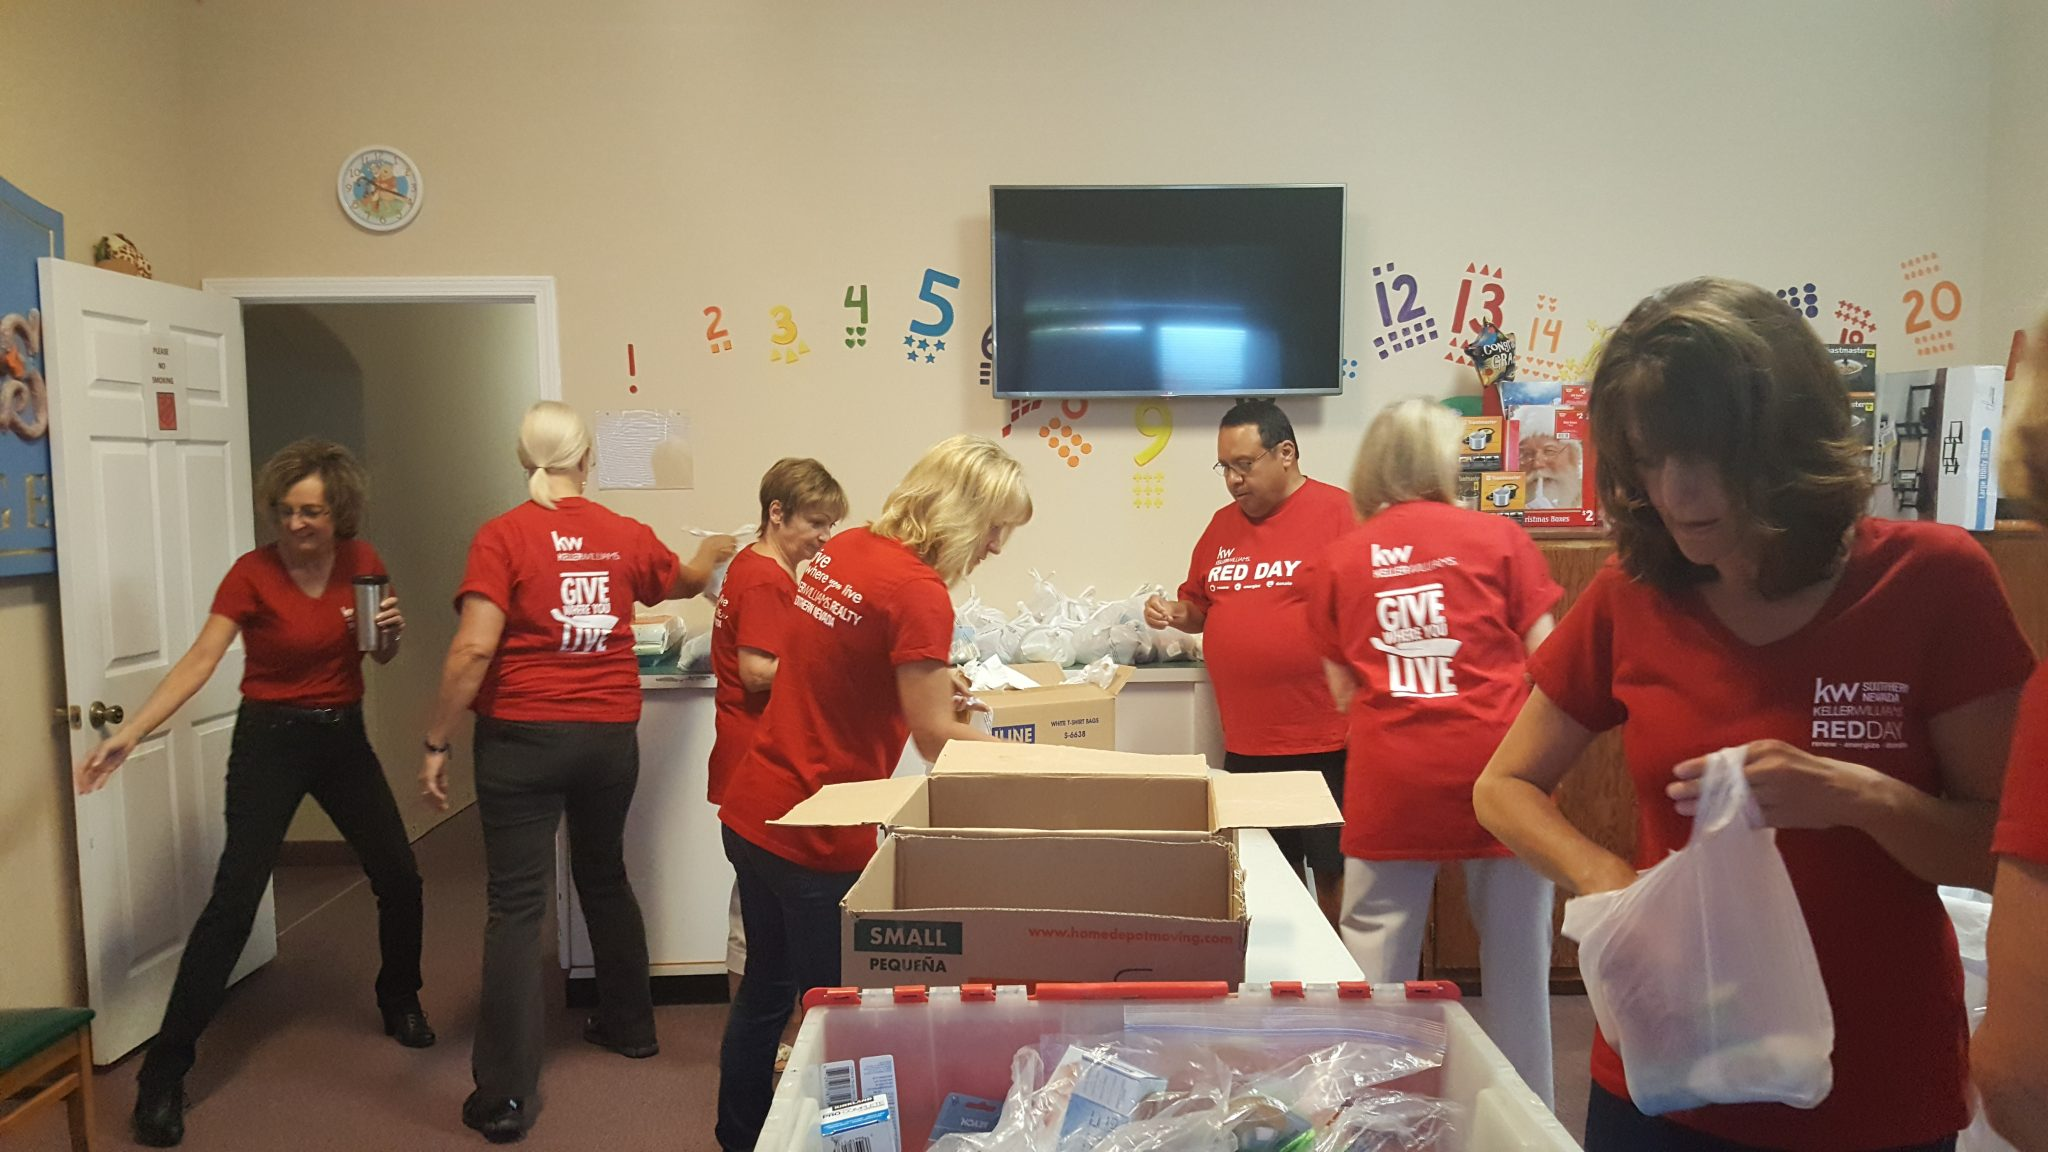 Keller Williams gives back to the community